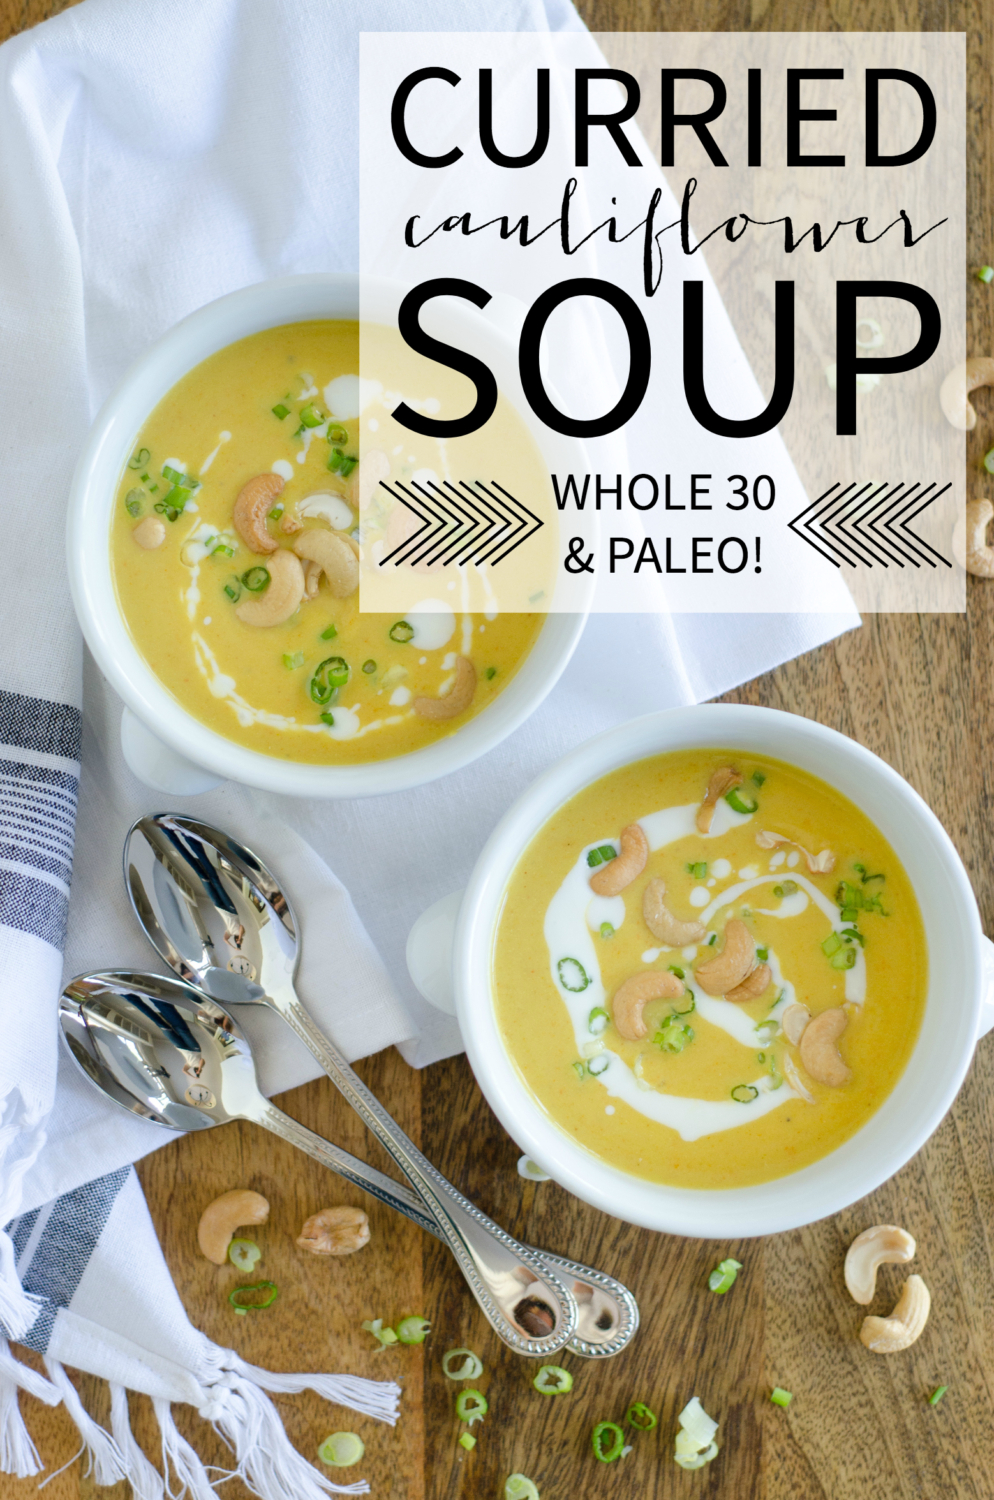 Creamy and delicious curried cauliflower soup recipe that is Whole 30 and Paleo!